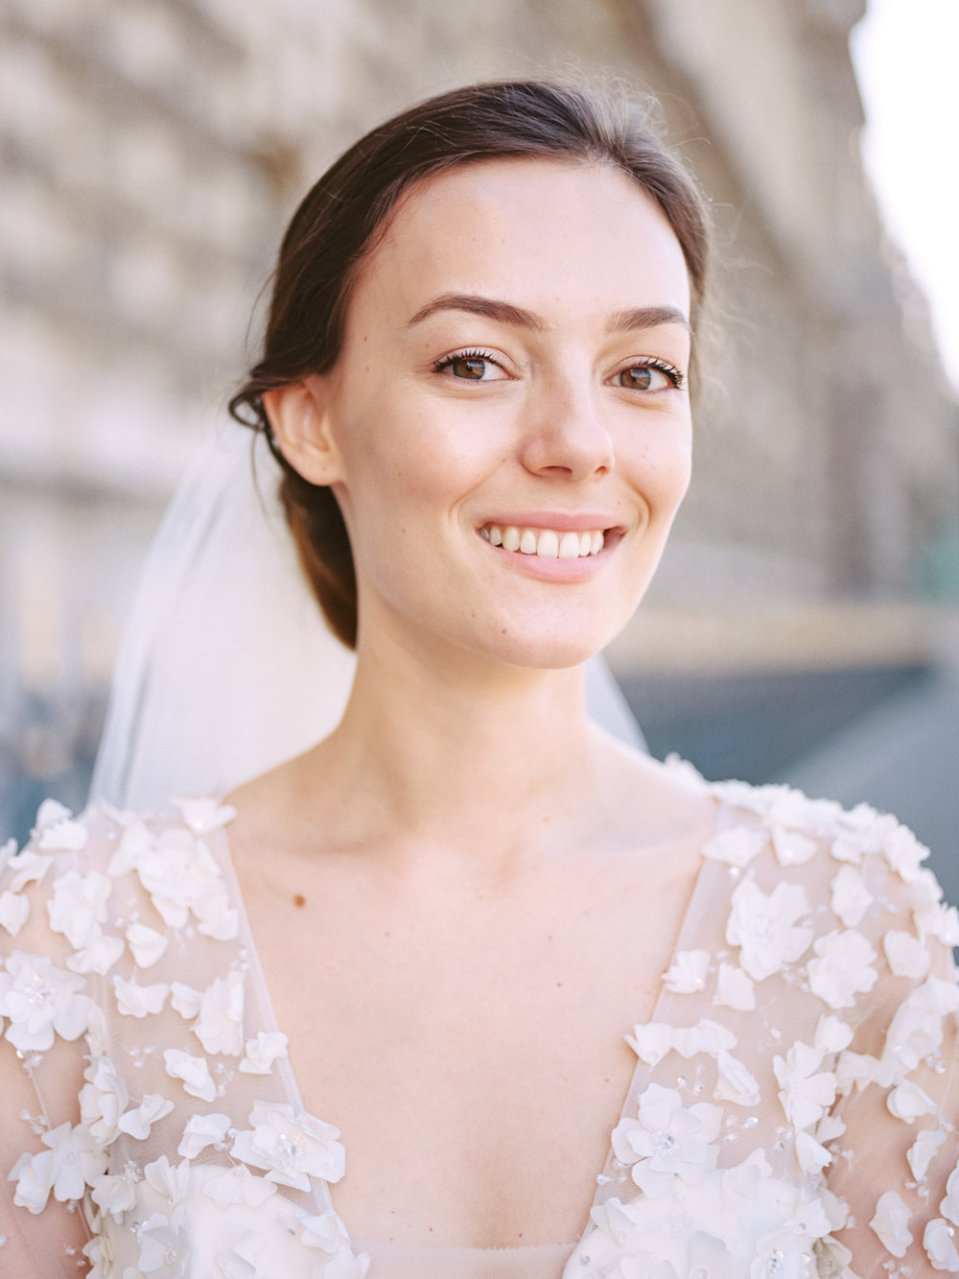 Destination Fine Art Wedding Editorial Photography in Paris with Max Chaoul -24.jpg